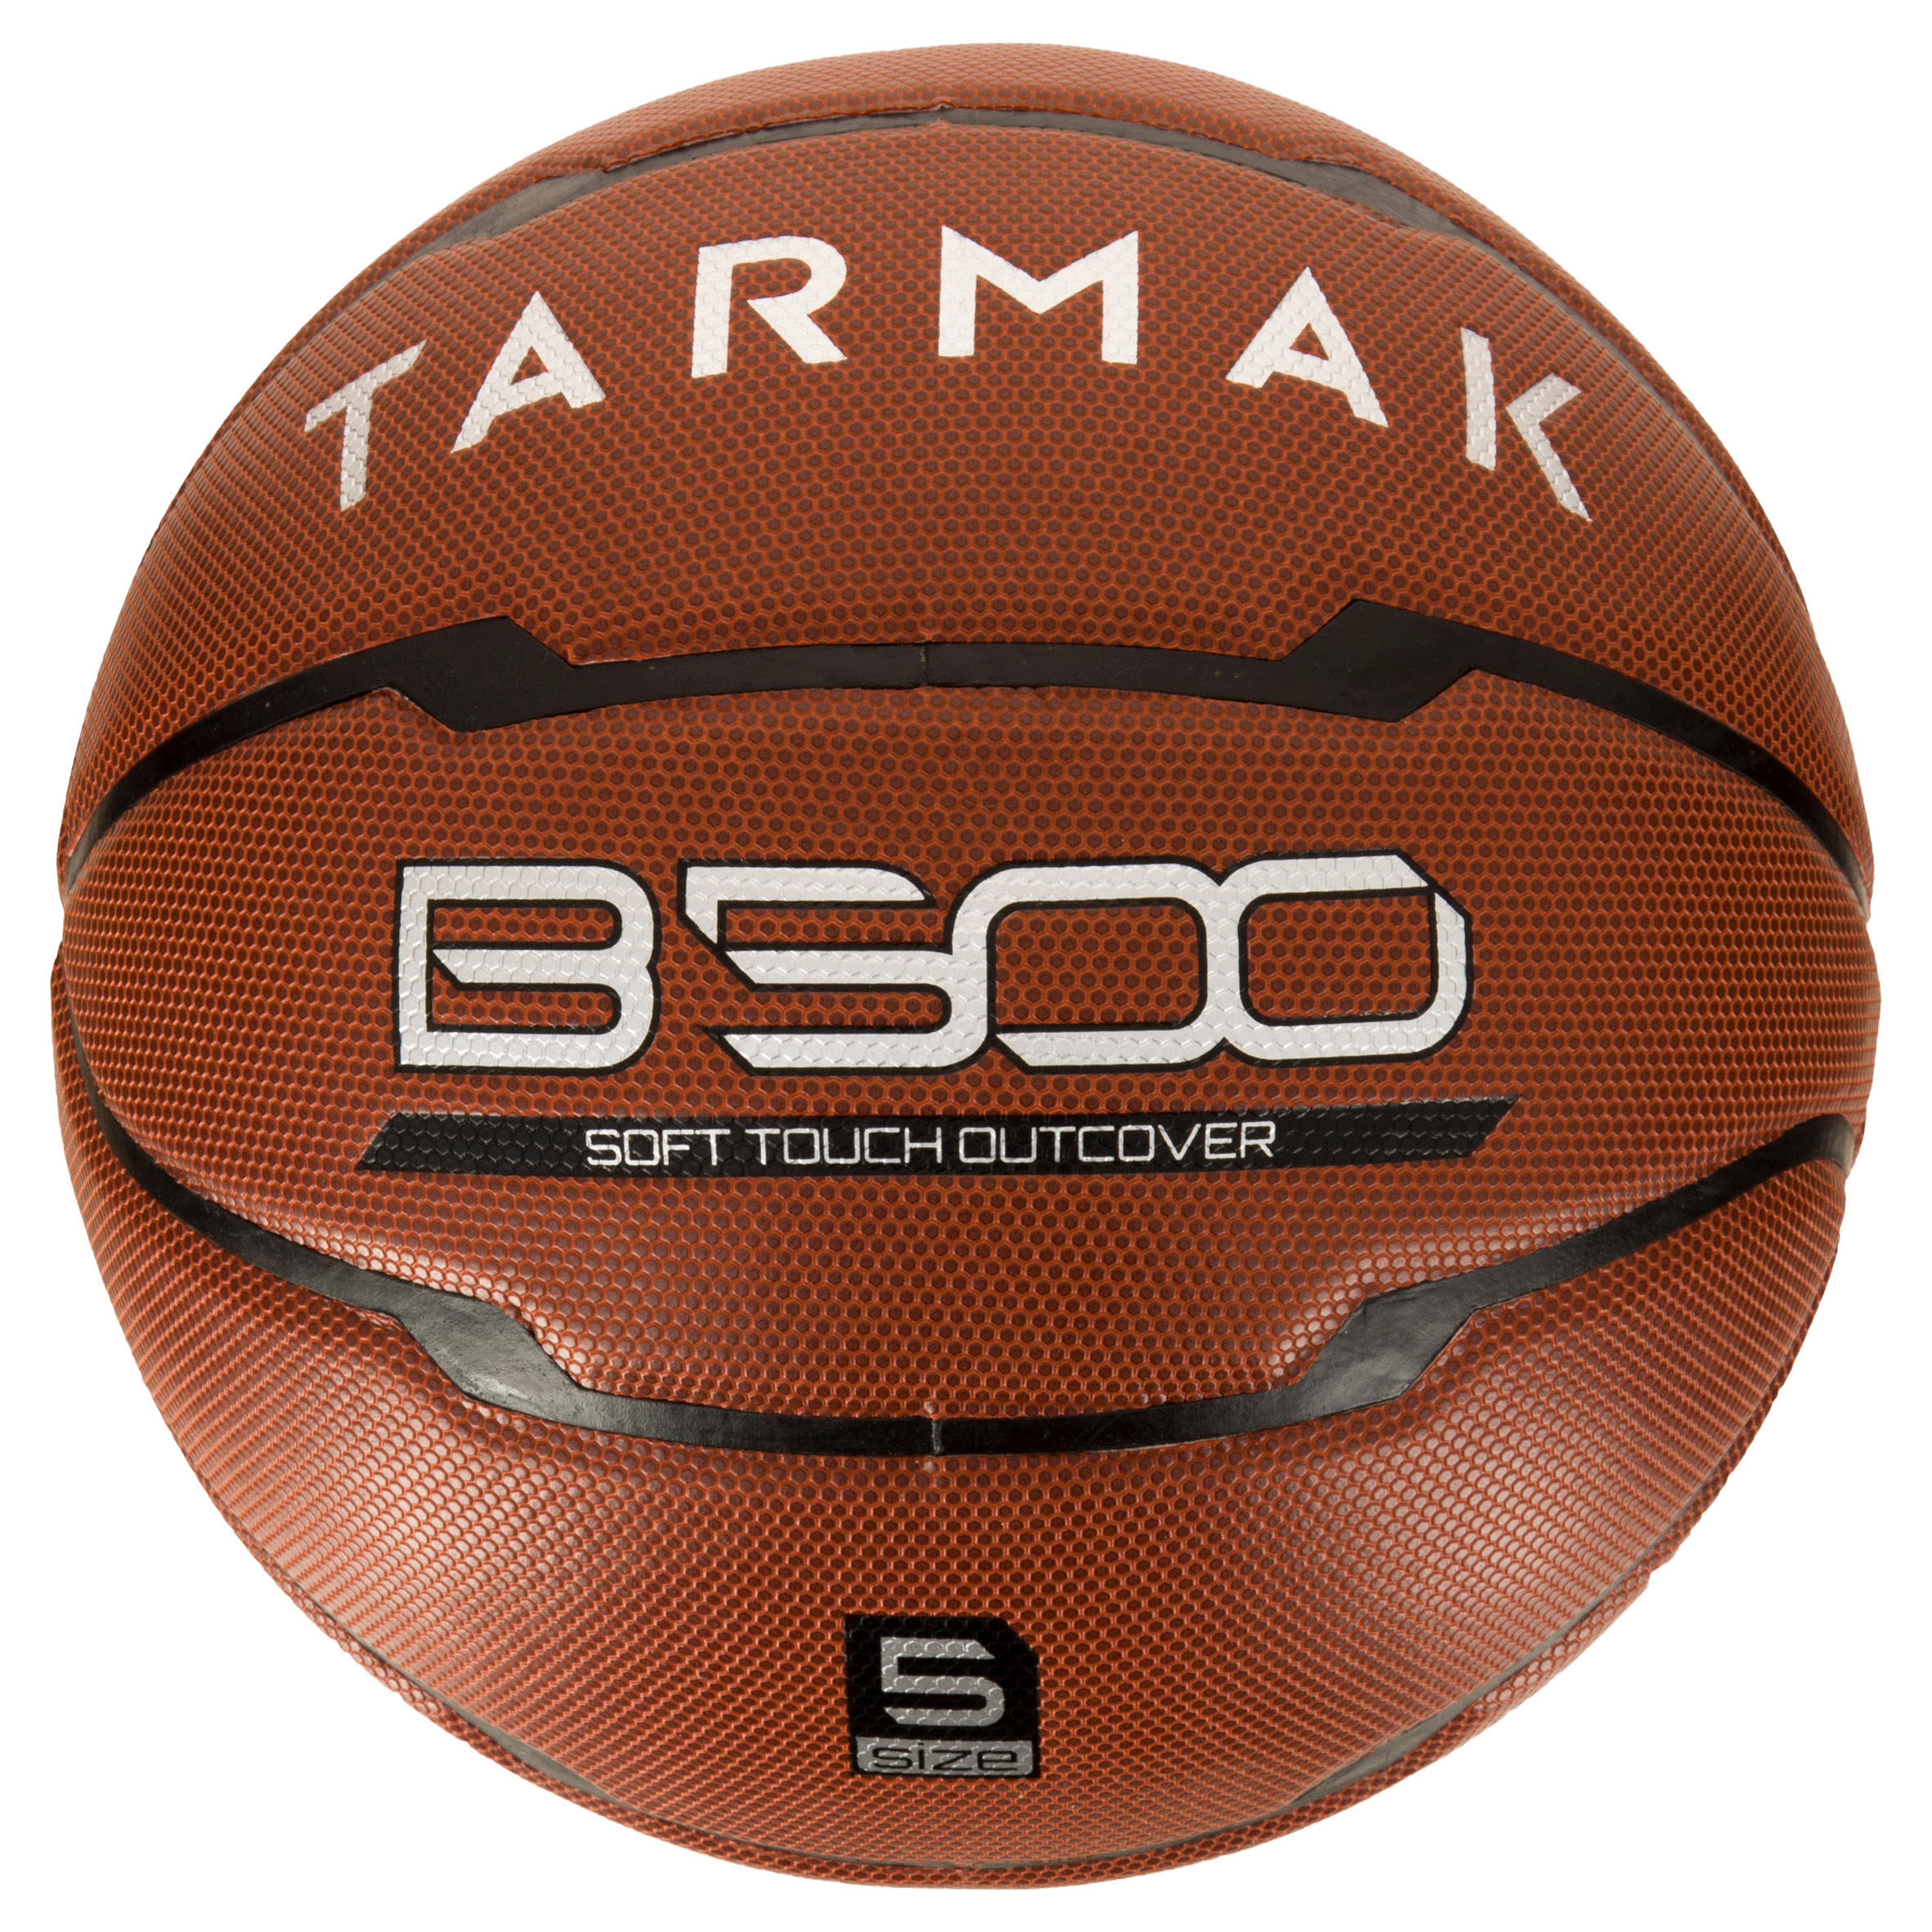 Ballon de basketball enfant B500 taille 5 marron